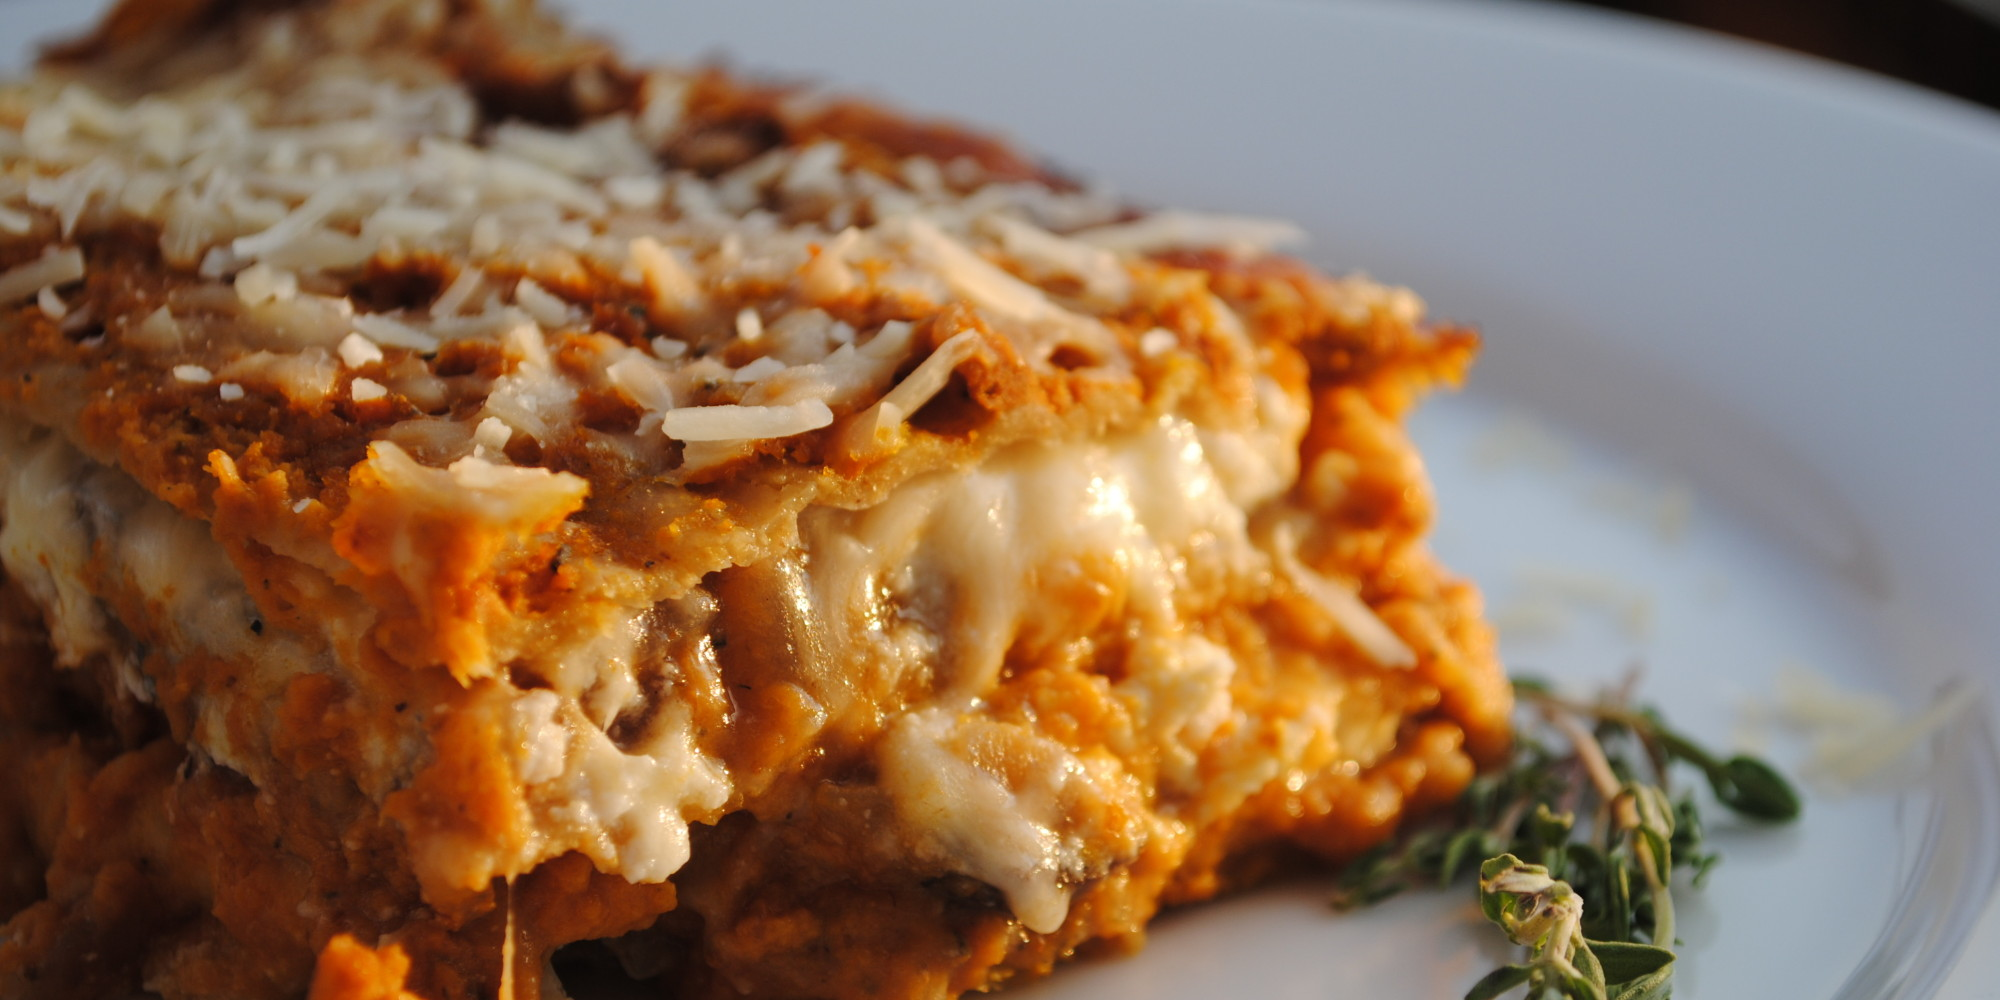 ... lasagna recipe easy lasagna ii easy lasagna ii recipe easy lasagna ii